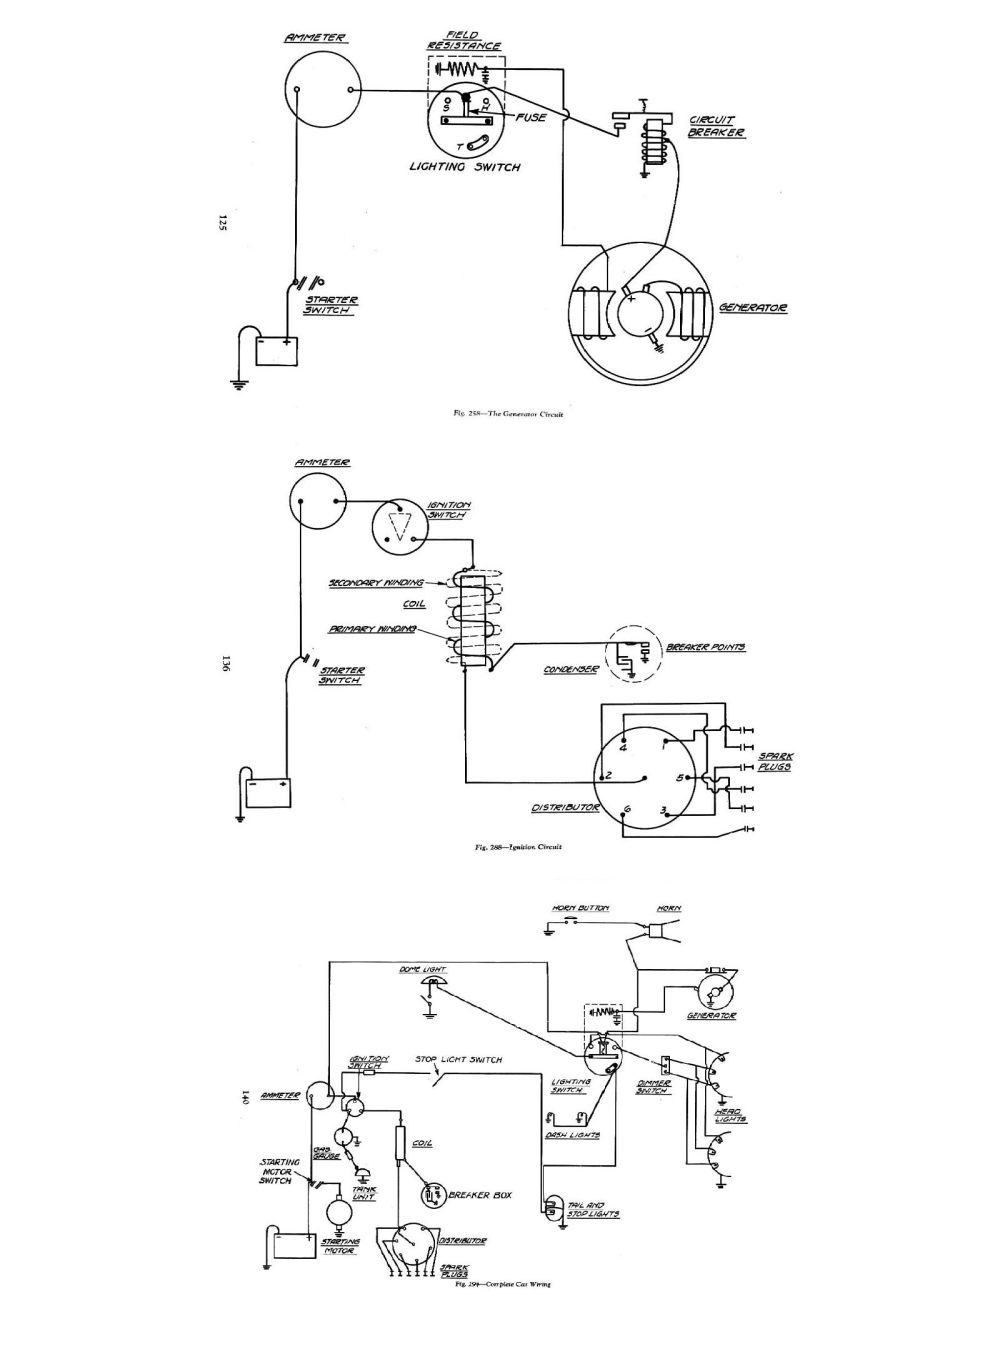 medium resolution of chevy wiring diagrams chevy blower motor wiring chevy generator wiring